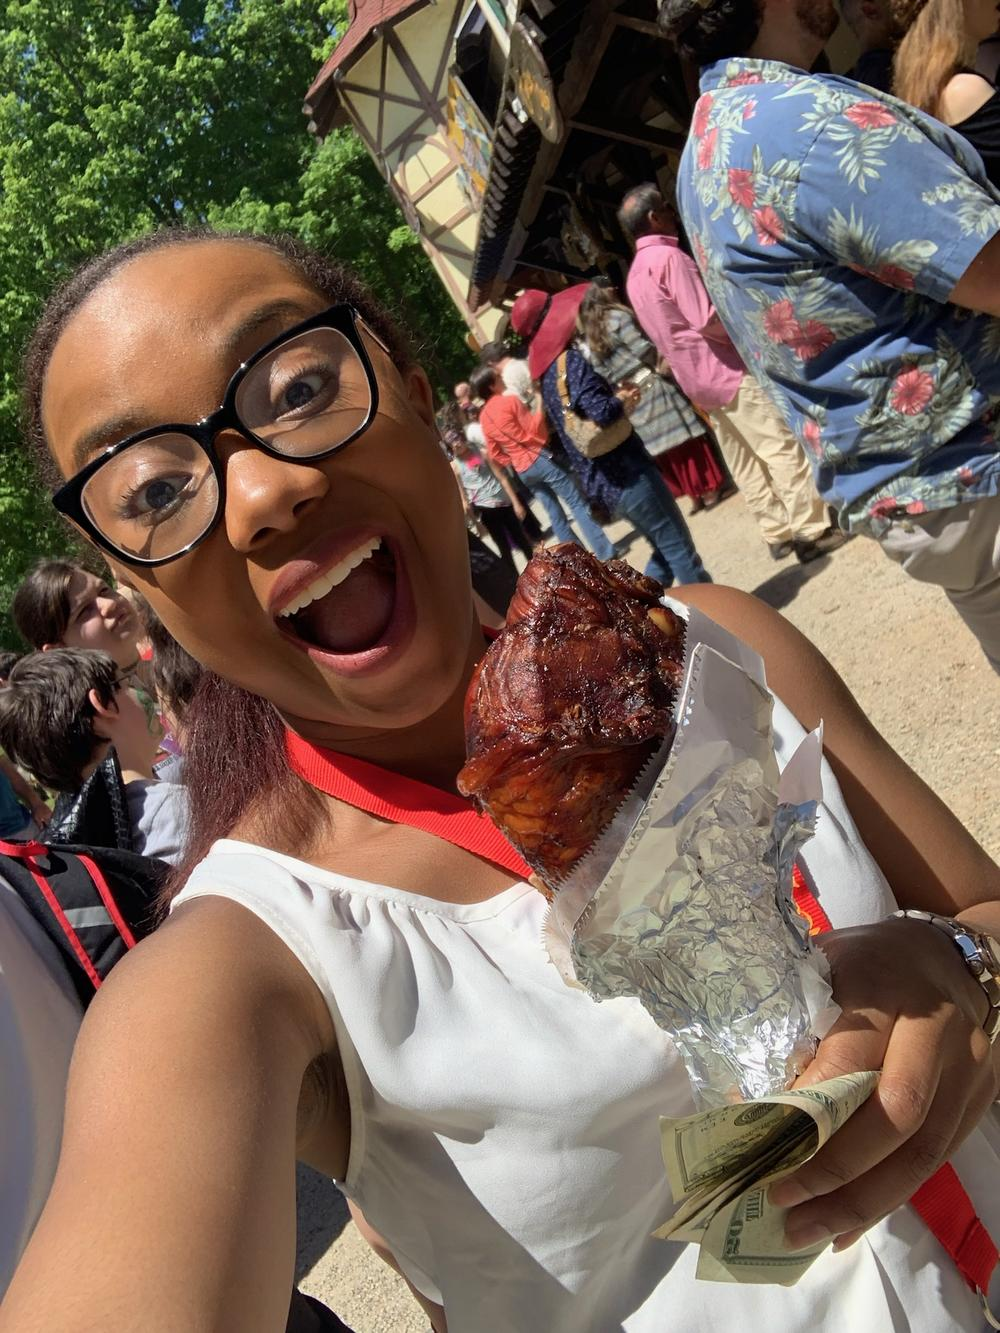 Madison McNair is smiling while holding a turkey leg at the ASL Day Festival in 2019.